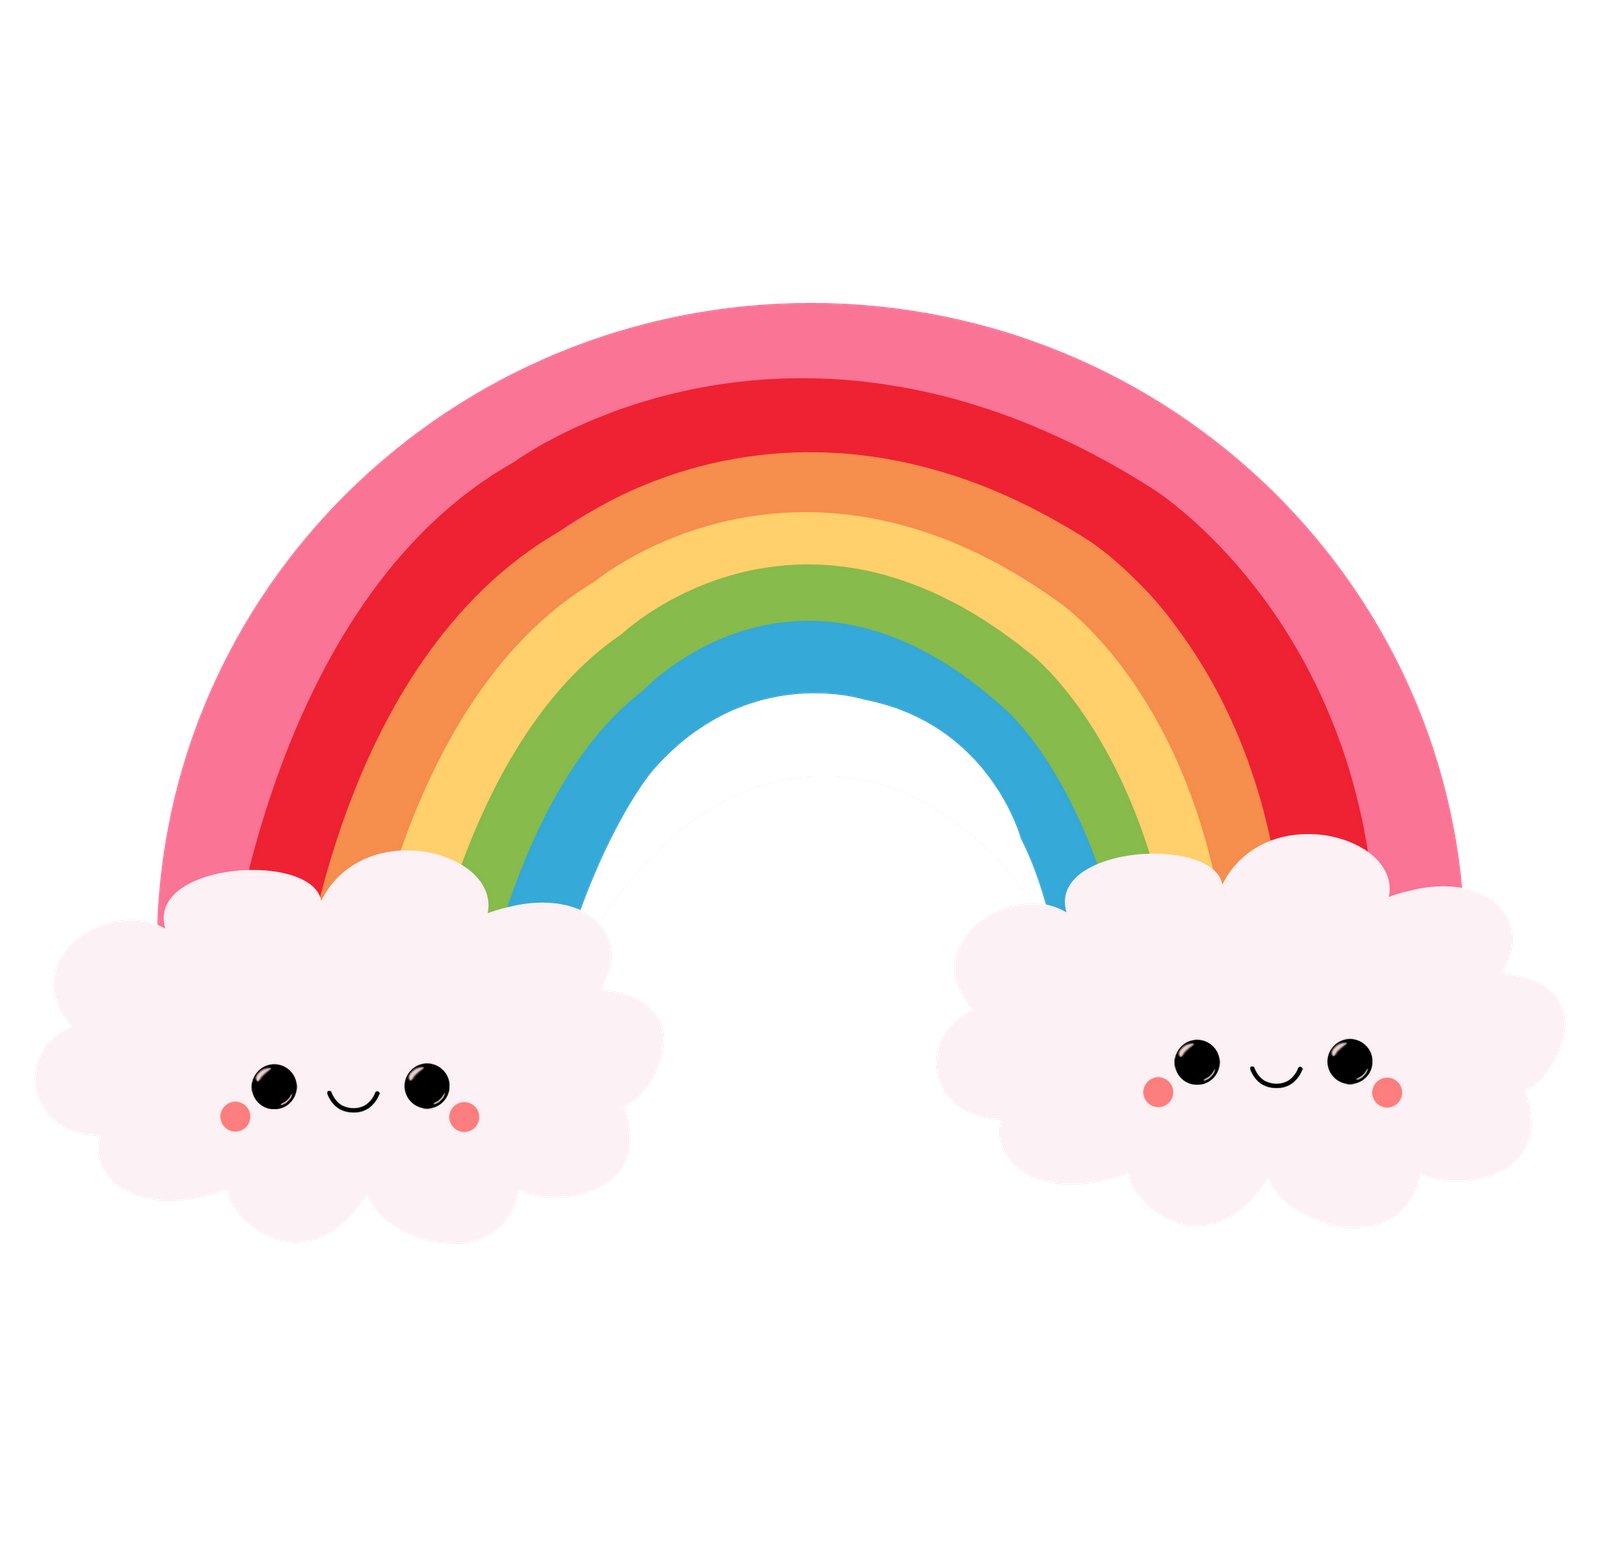 clipart black and white stock drawing rainbows cute #112146868